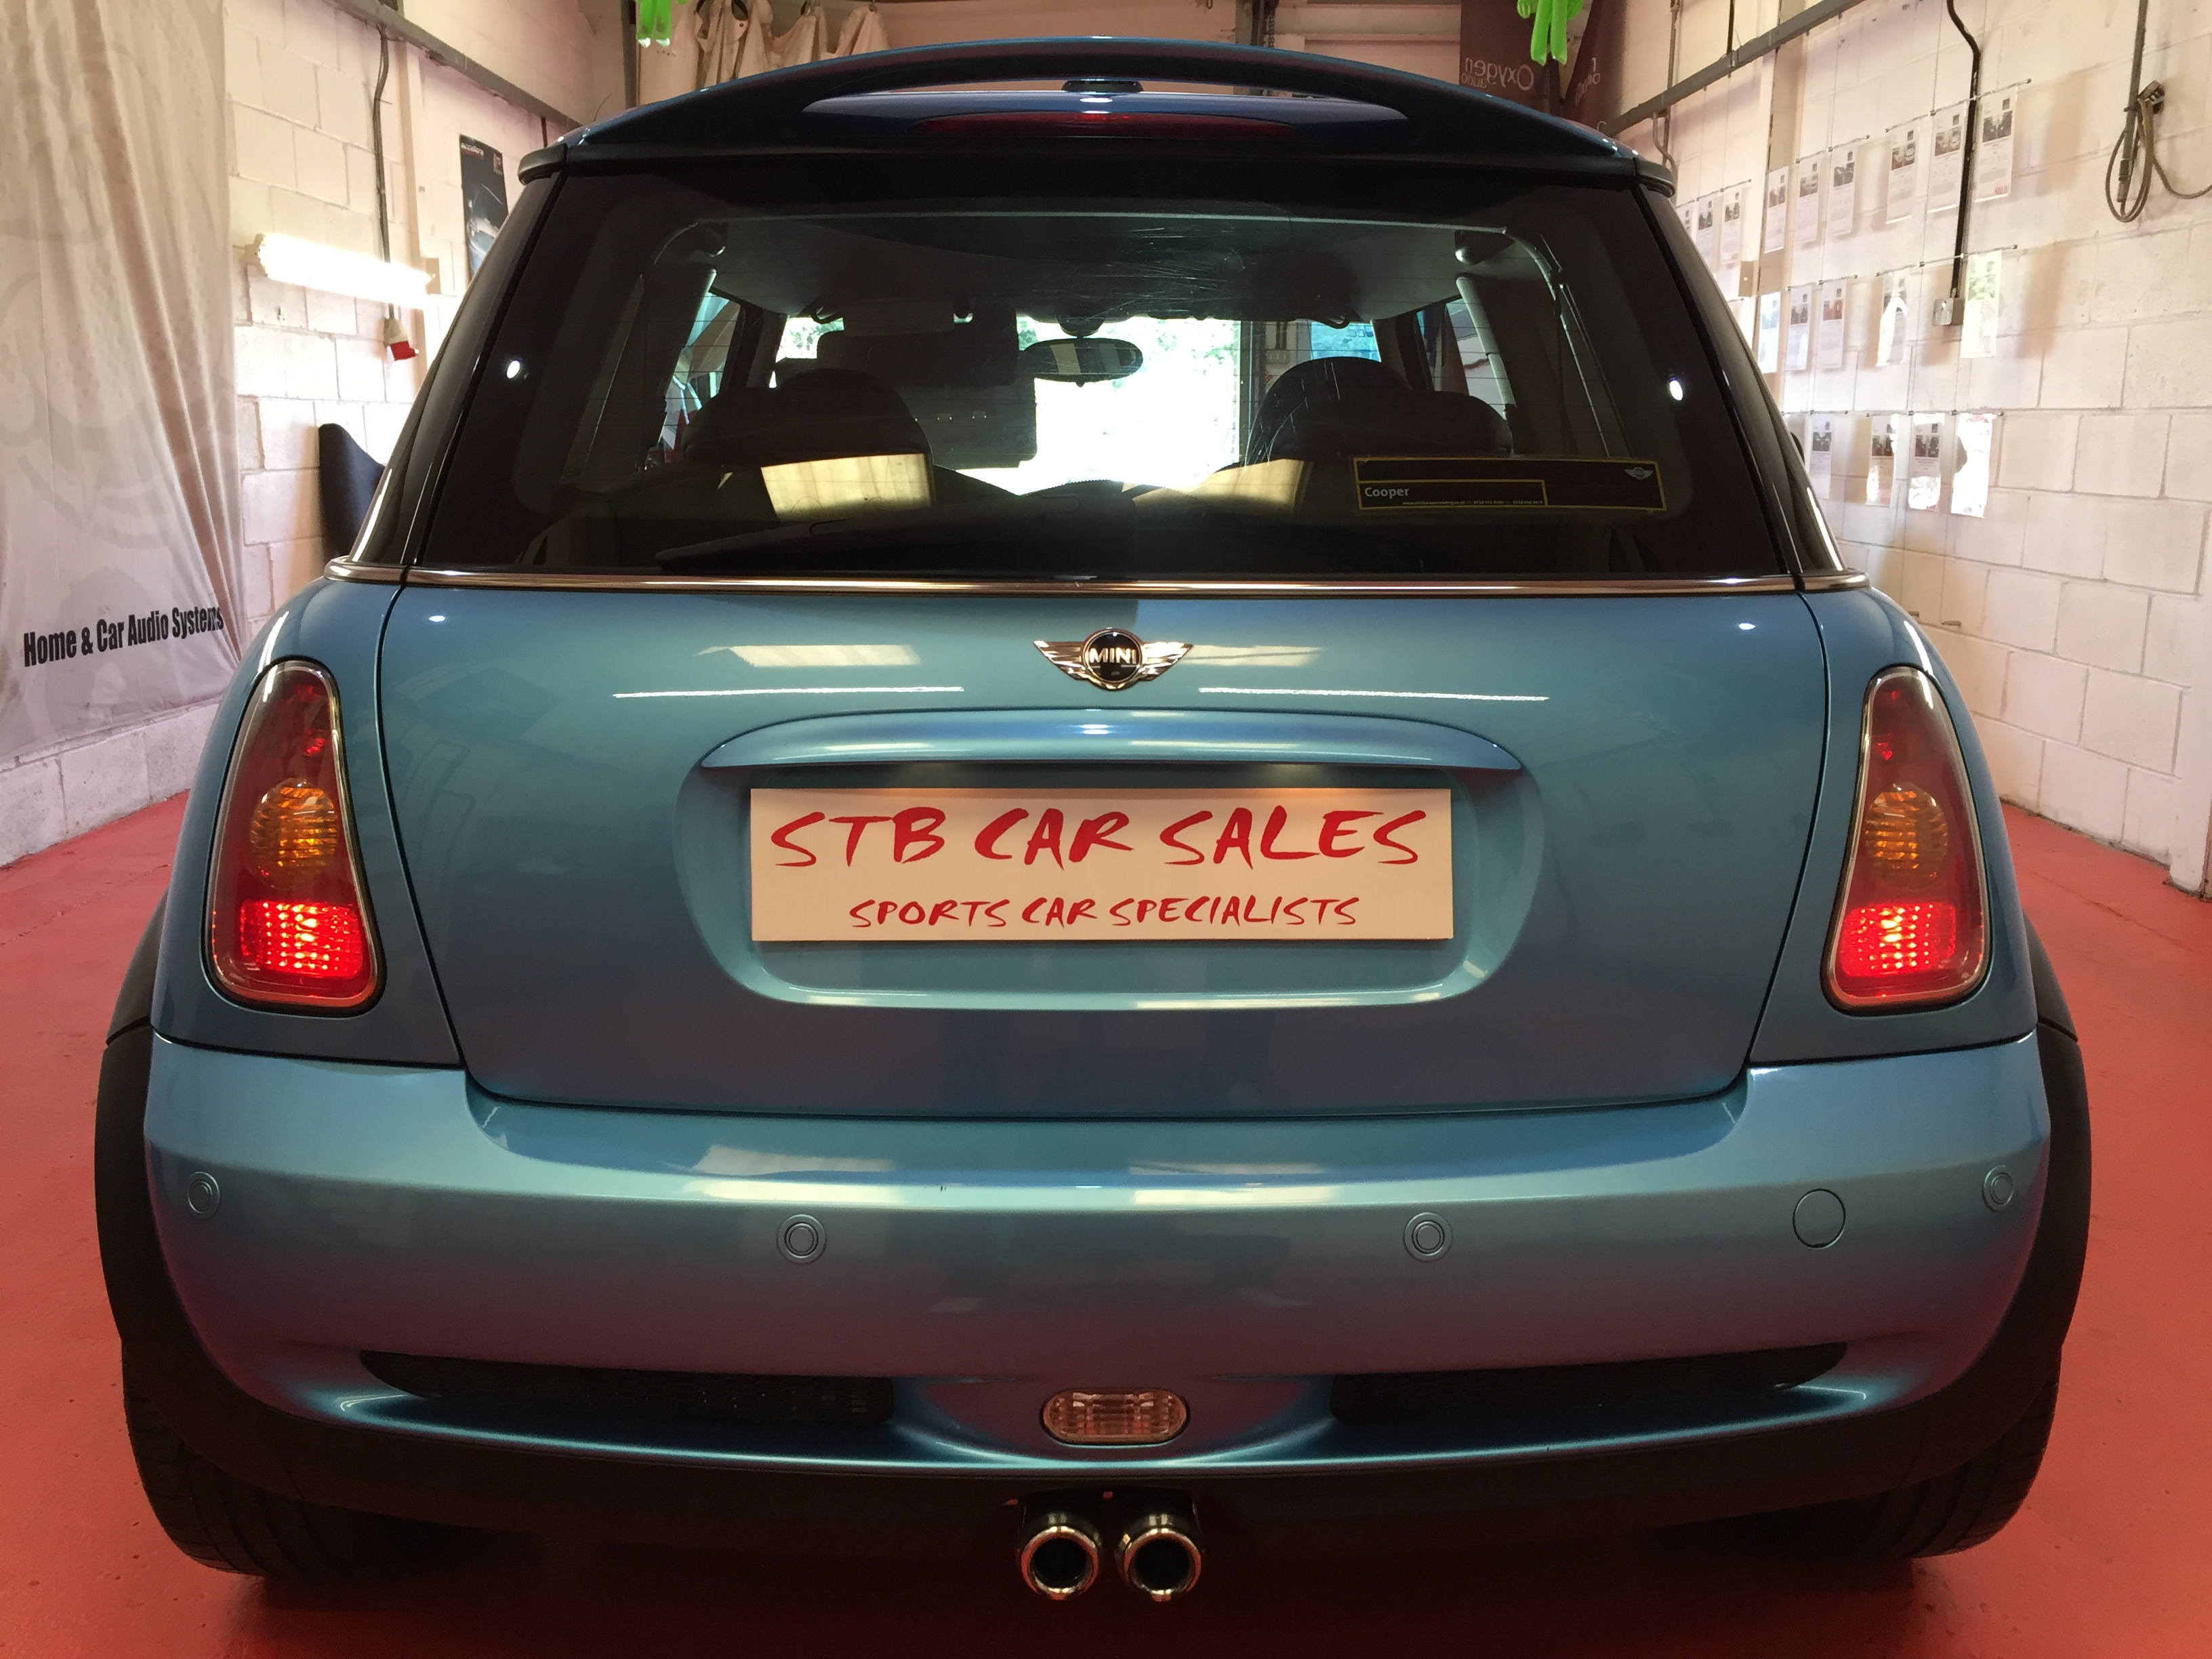 Mini 16 Chili Cooper S In Stunning Blue Stb Cars Sales Car Audio Inventory Listing